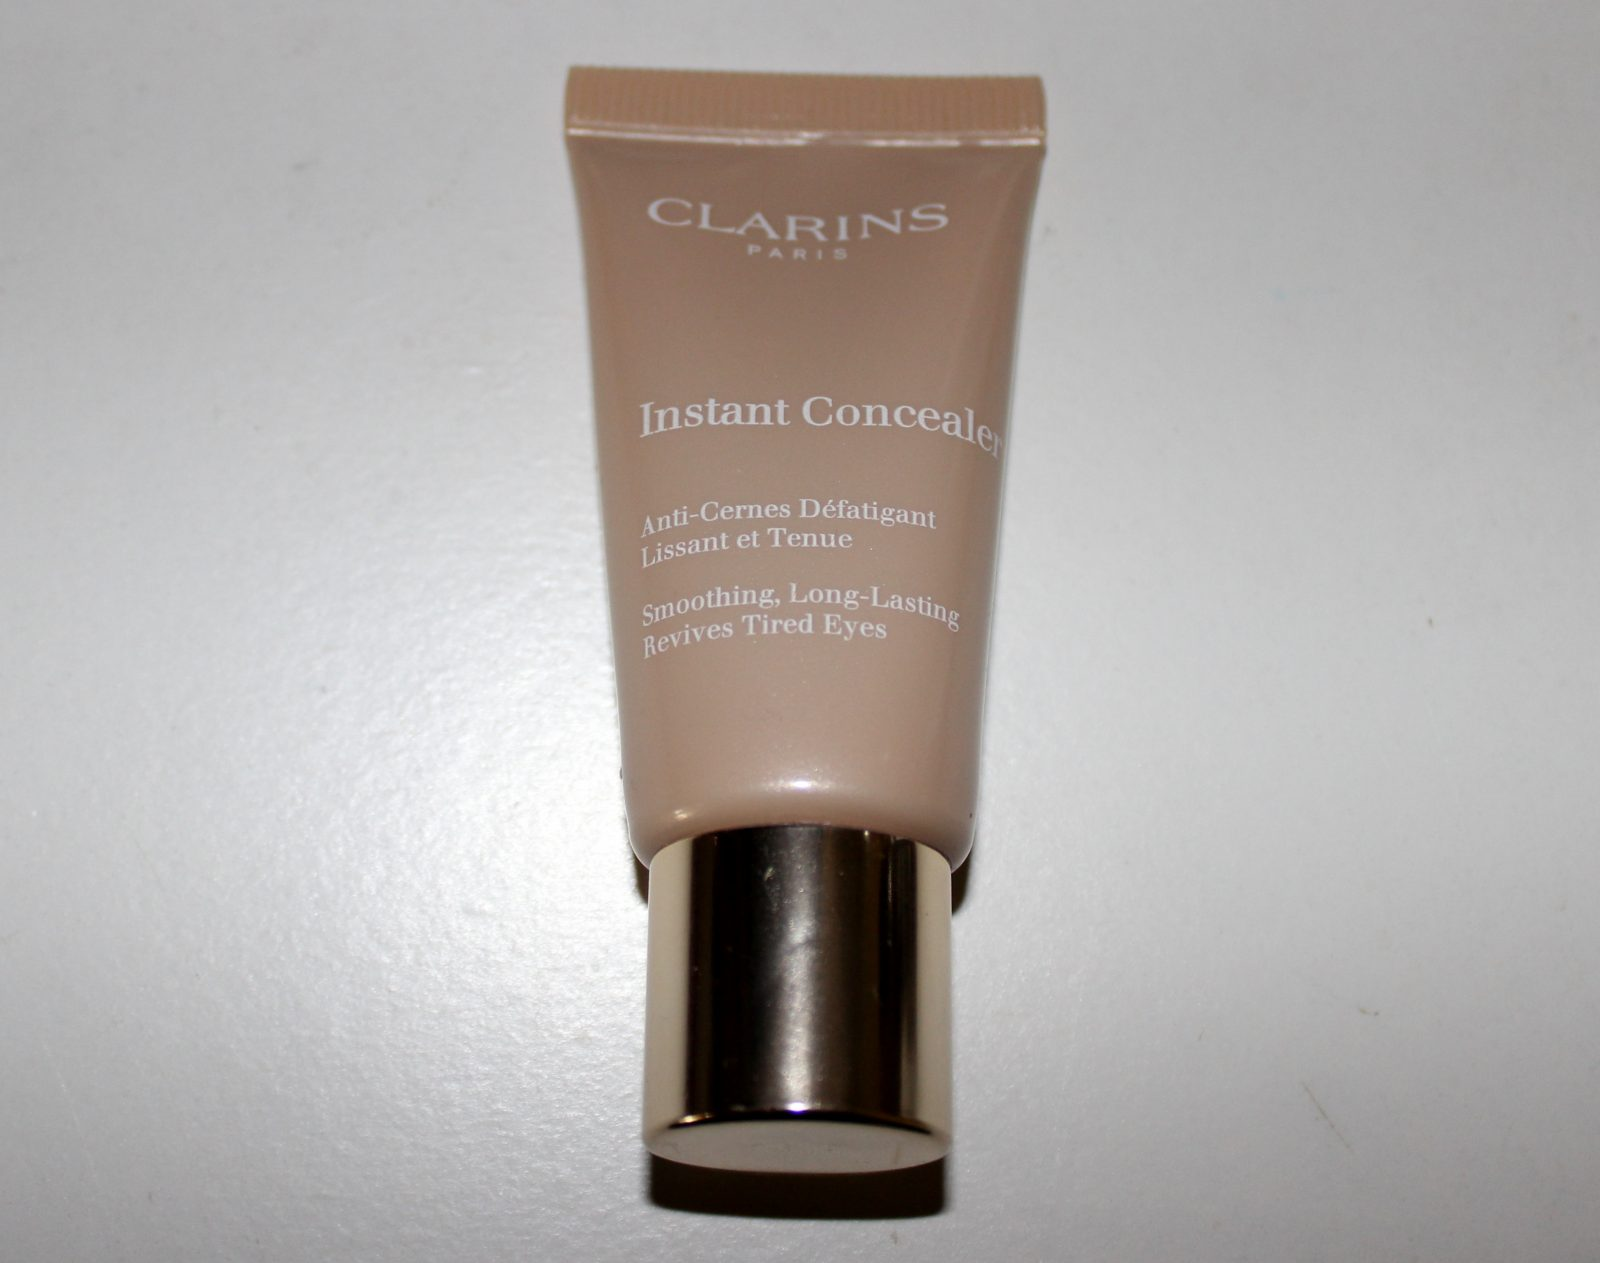 Clarins Instant Concealer A Review - Irish Beauty Blog ...